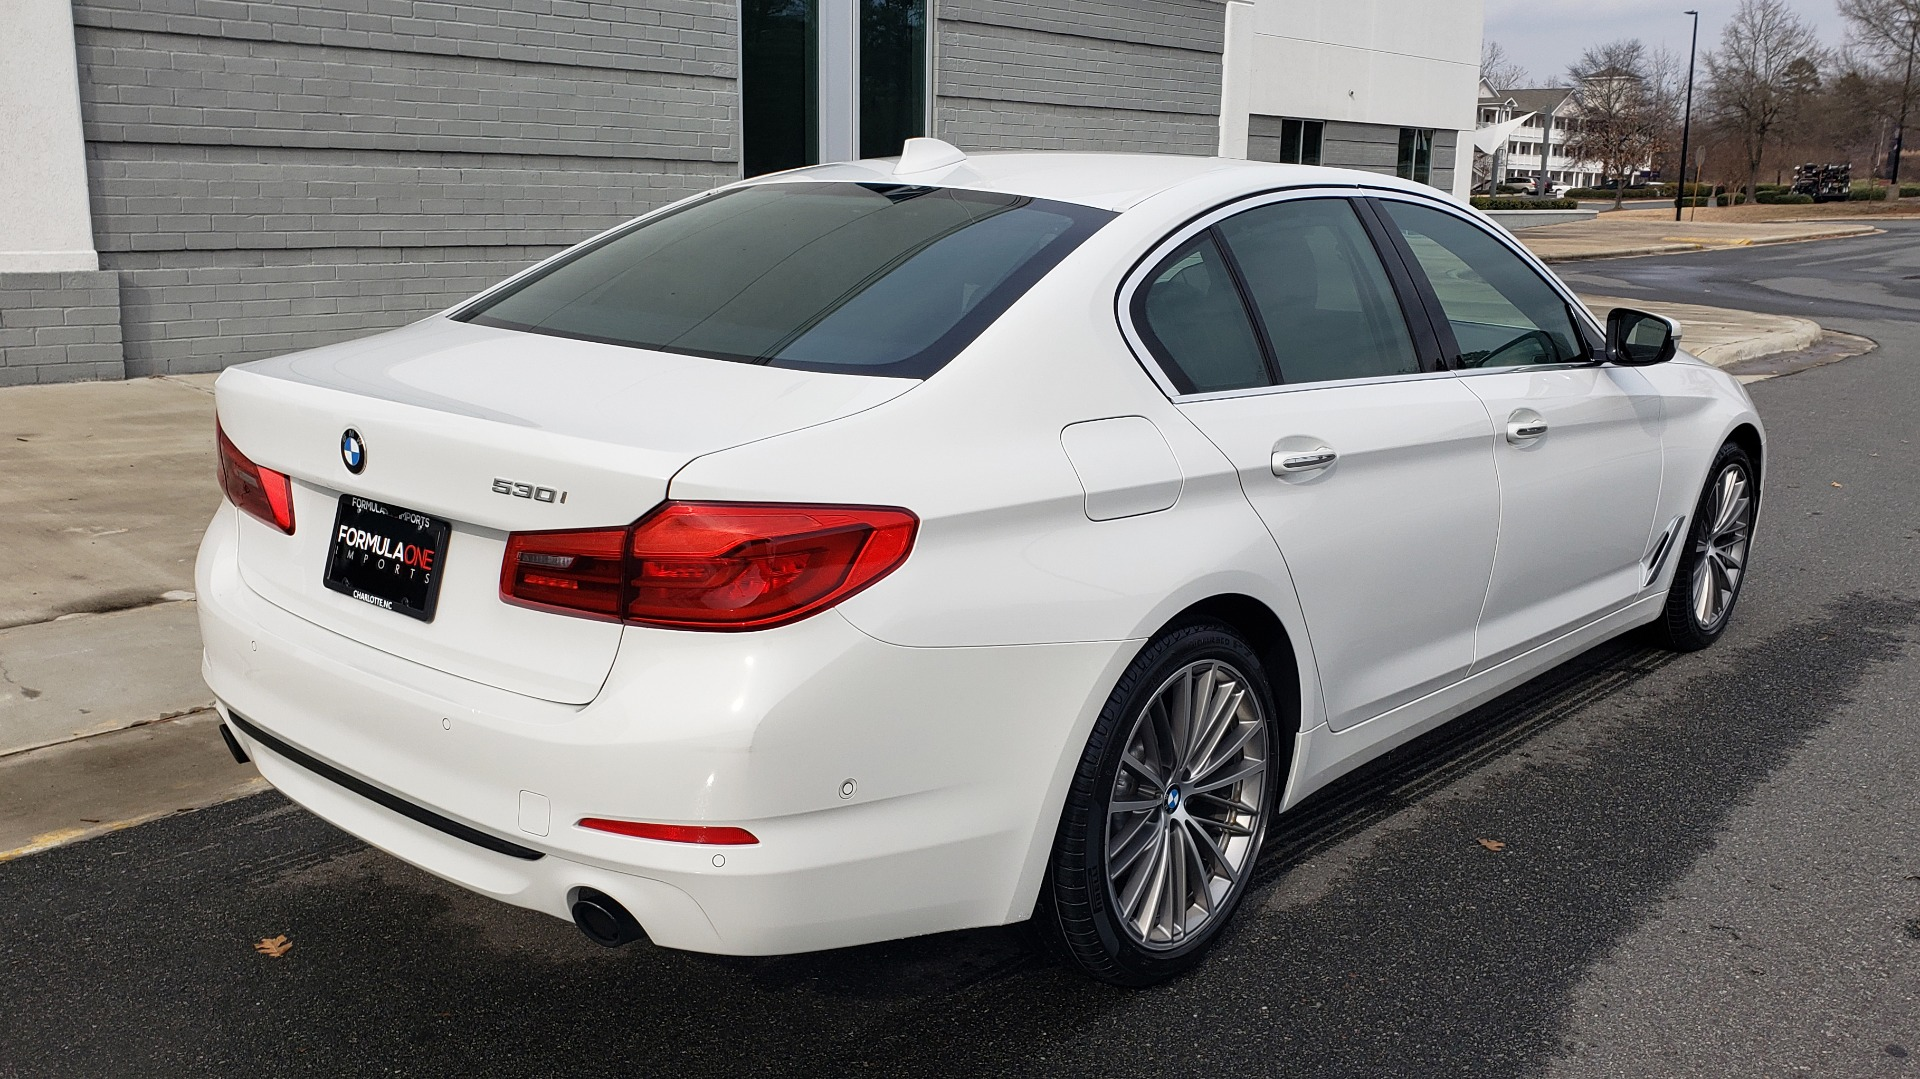 Used 2017 BMW 5 SERIES 530I PREMIUM / DRVR ASST PLUS / NAV / HUD / SUNROOF / REARVIEW for sale Sold at Formula Imports in Charlotte NC 28227 7